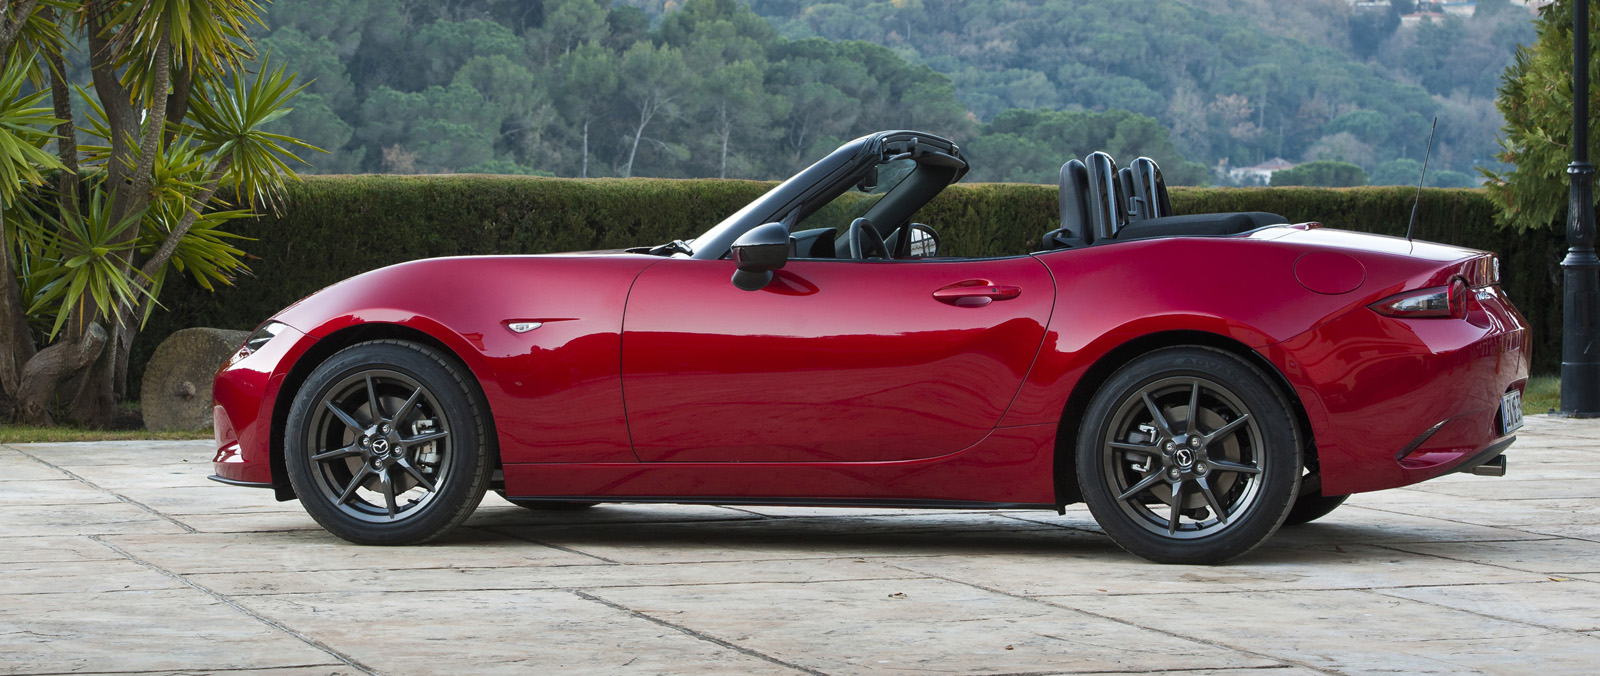 Mazda Mx 5 Nd Is De Open Tweezits Sportauto Mazda